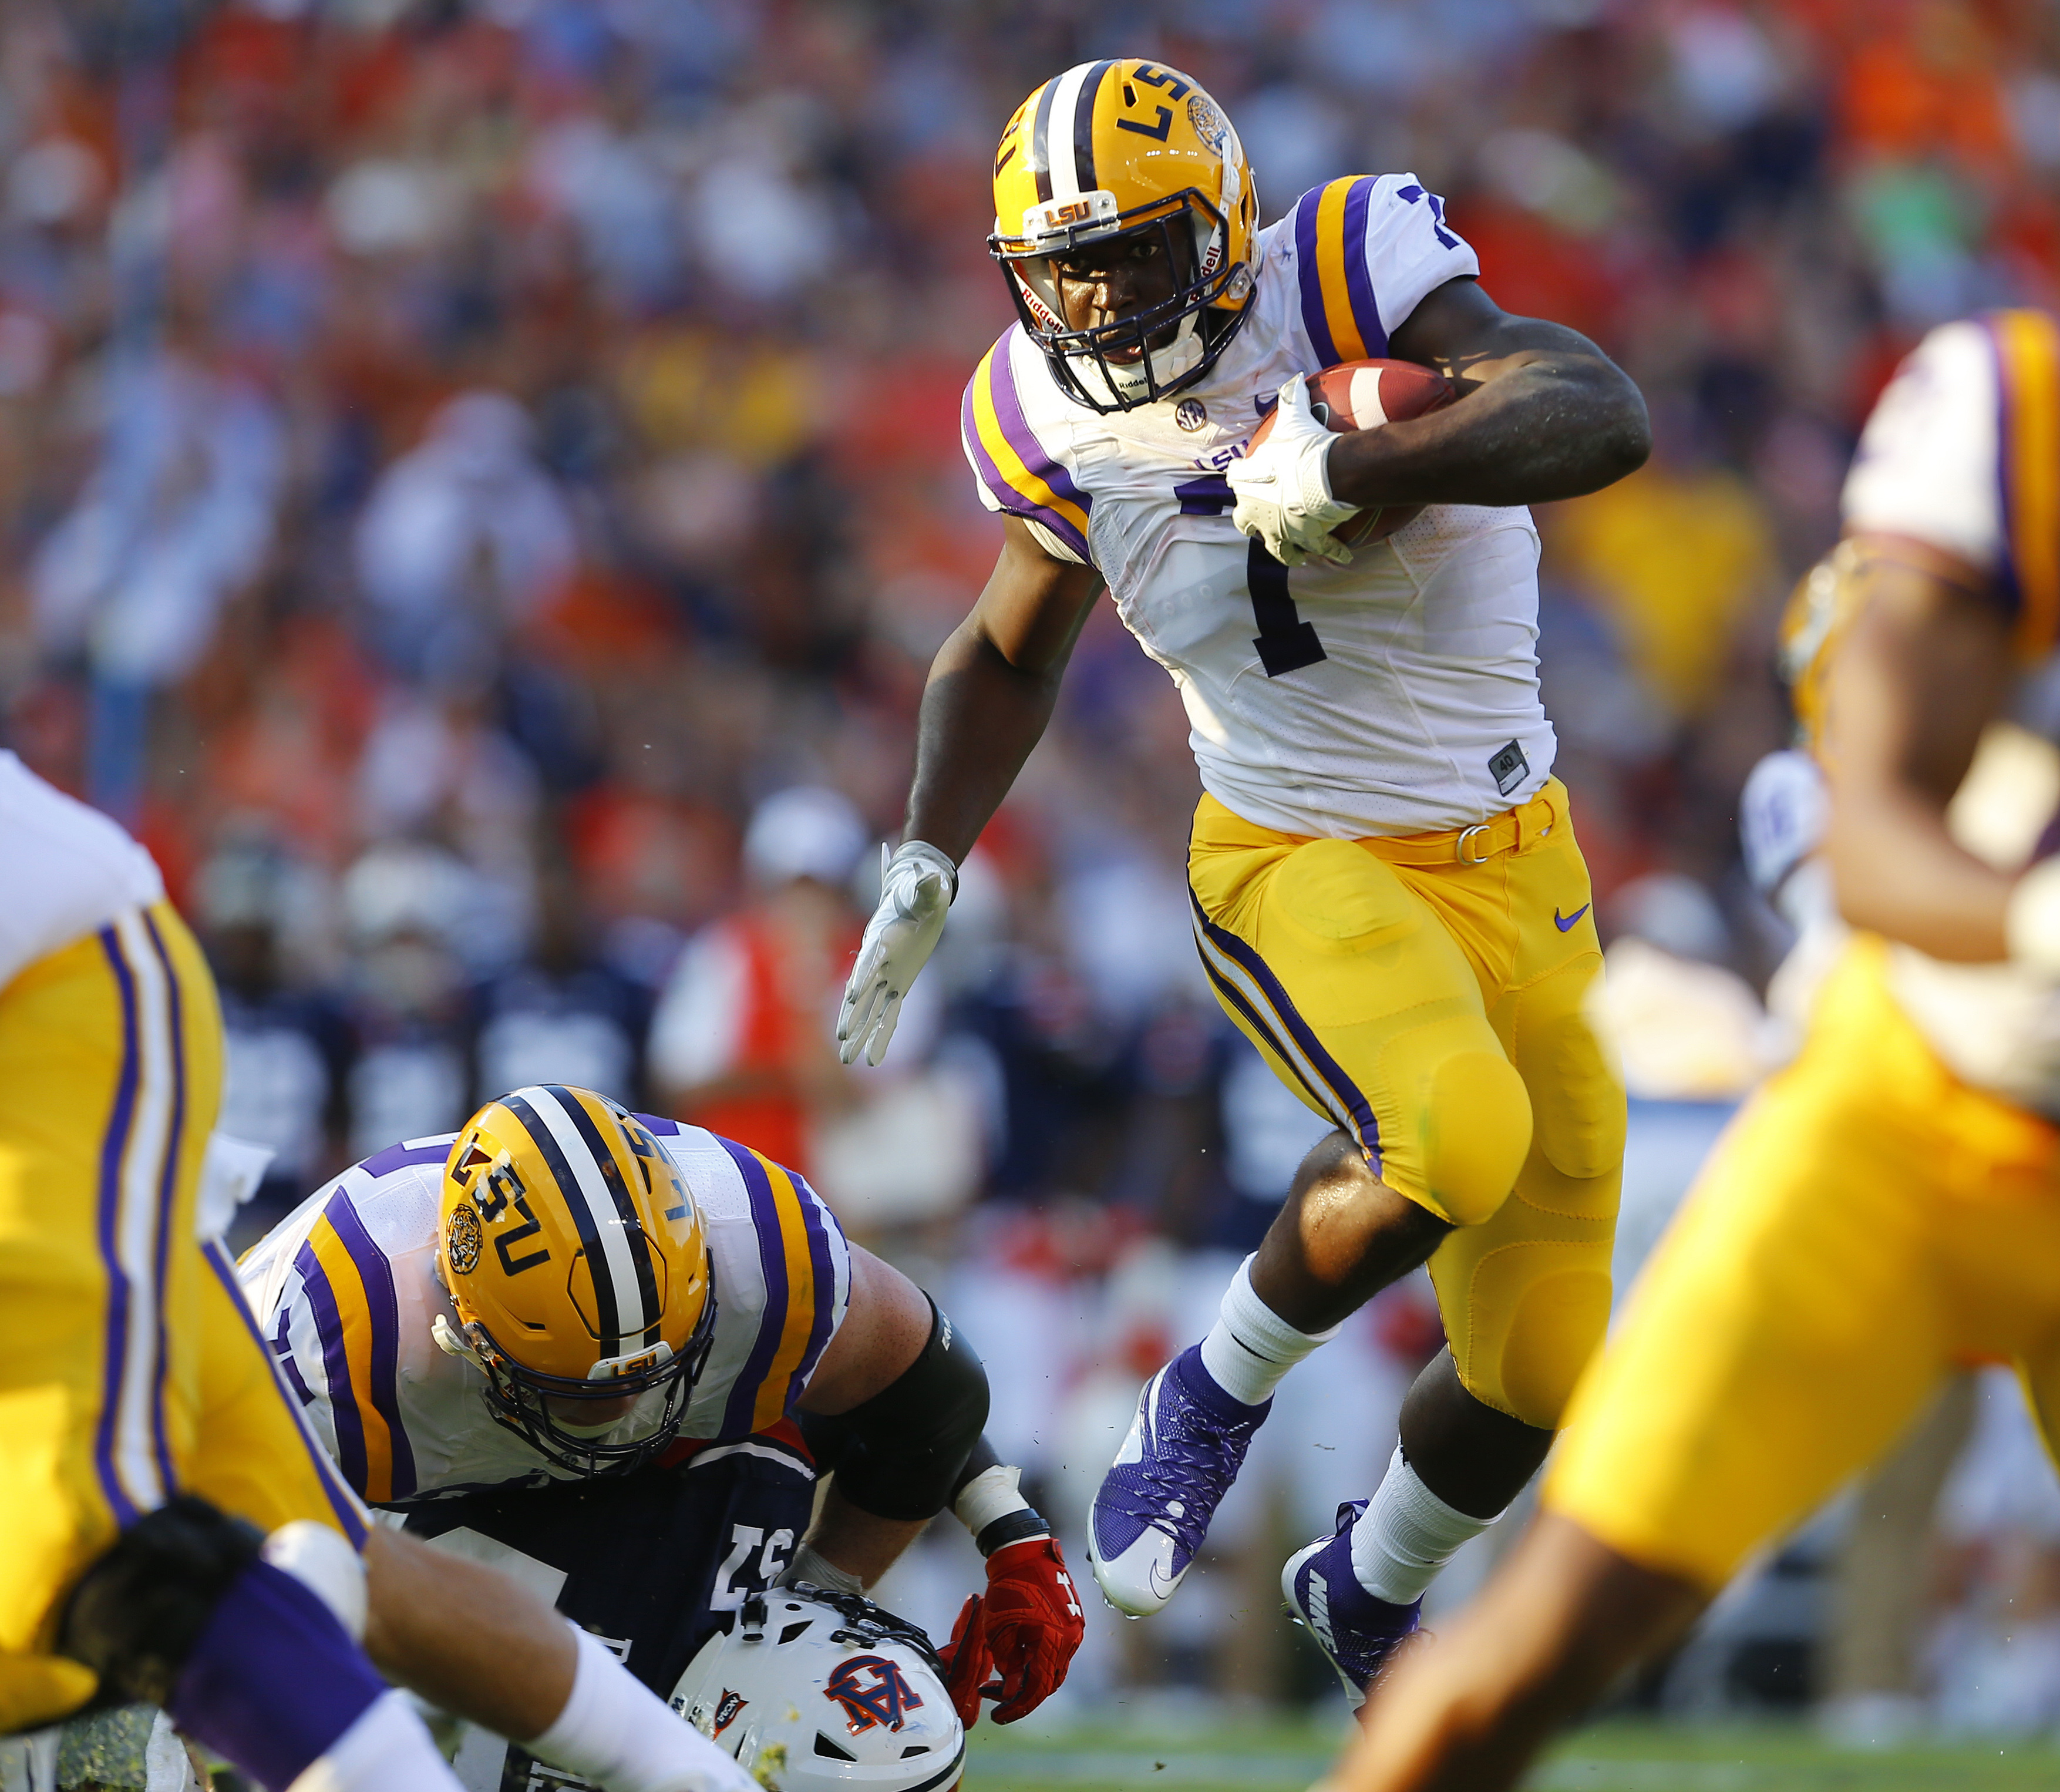 FILE - In this Sept. 24, 2016, file photo, LSU running back Leonard Fournette (7) hurdles an Auburn player as he carries the ball during the first half of an NCAA college football game,  in Auburn, Ala. Even after missing four games with injuries, Leonard